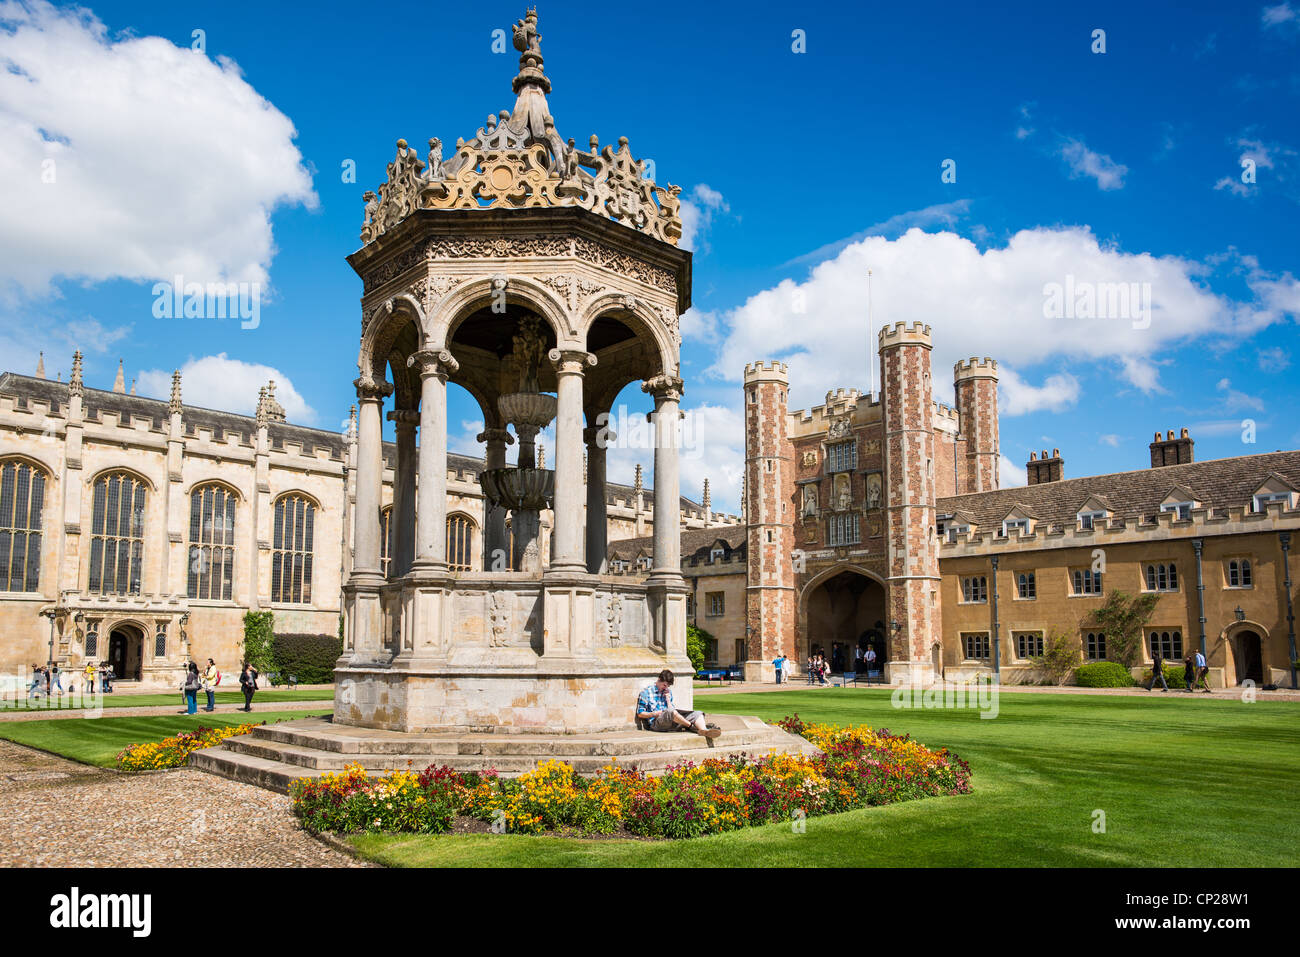 Cambridge University Trinity College Great Court and water fountain. UK. HIGH RESOLUTION IMAGE TAKEN WITH CARL ZEISS - Stock Image